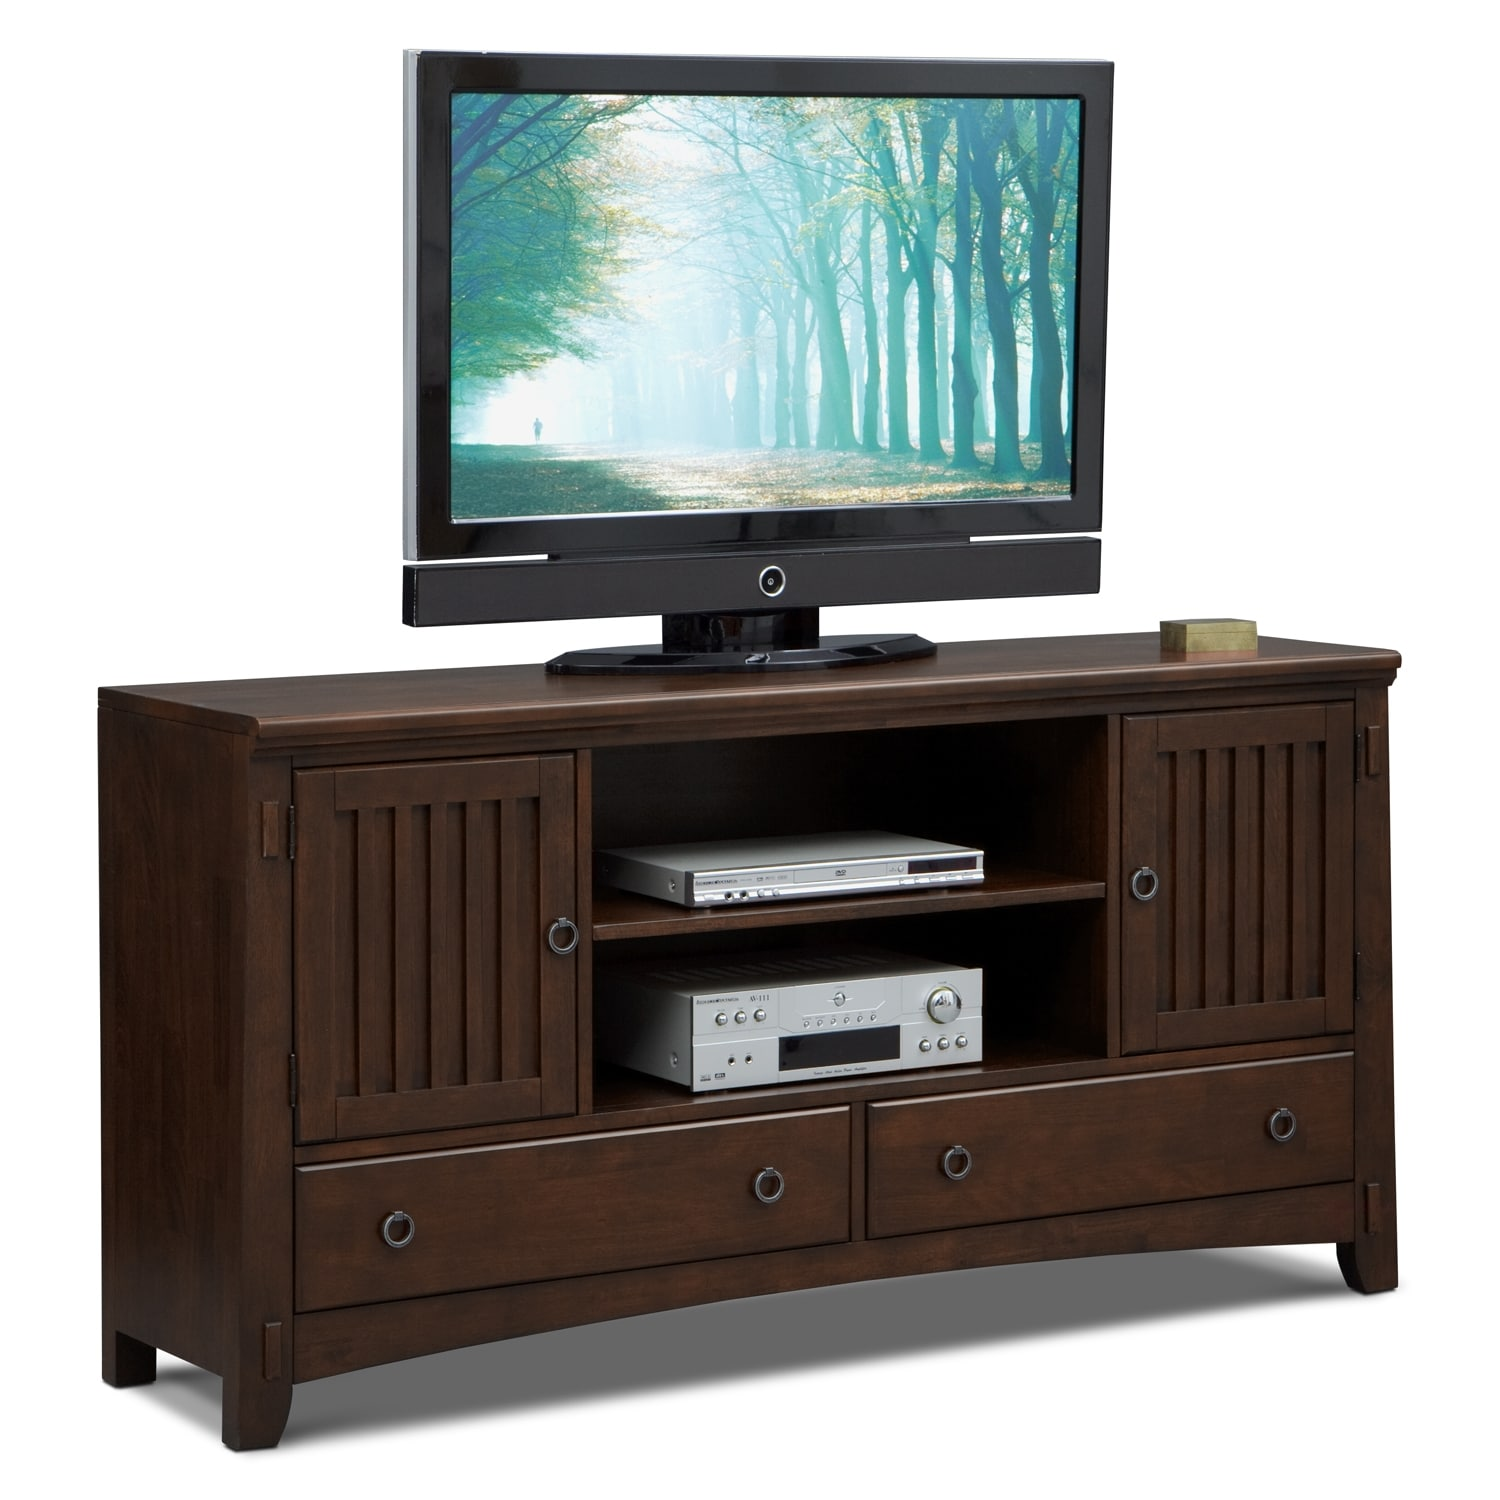 Arts crafts 4 piece entertainment wall unit chocolate for Mission style entertainment center plans